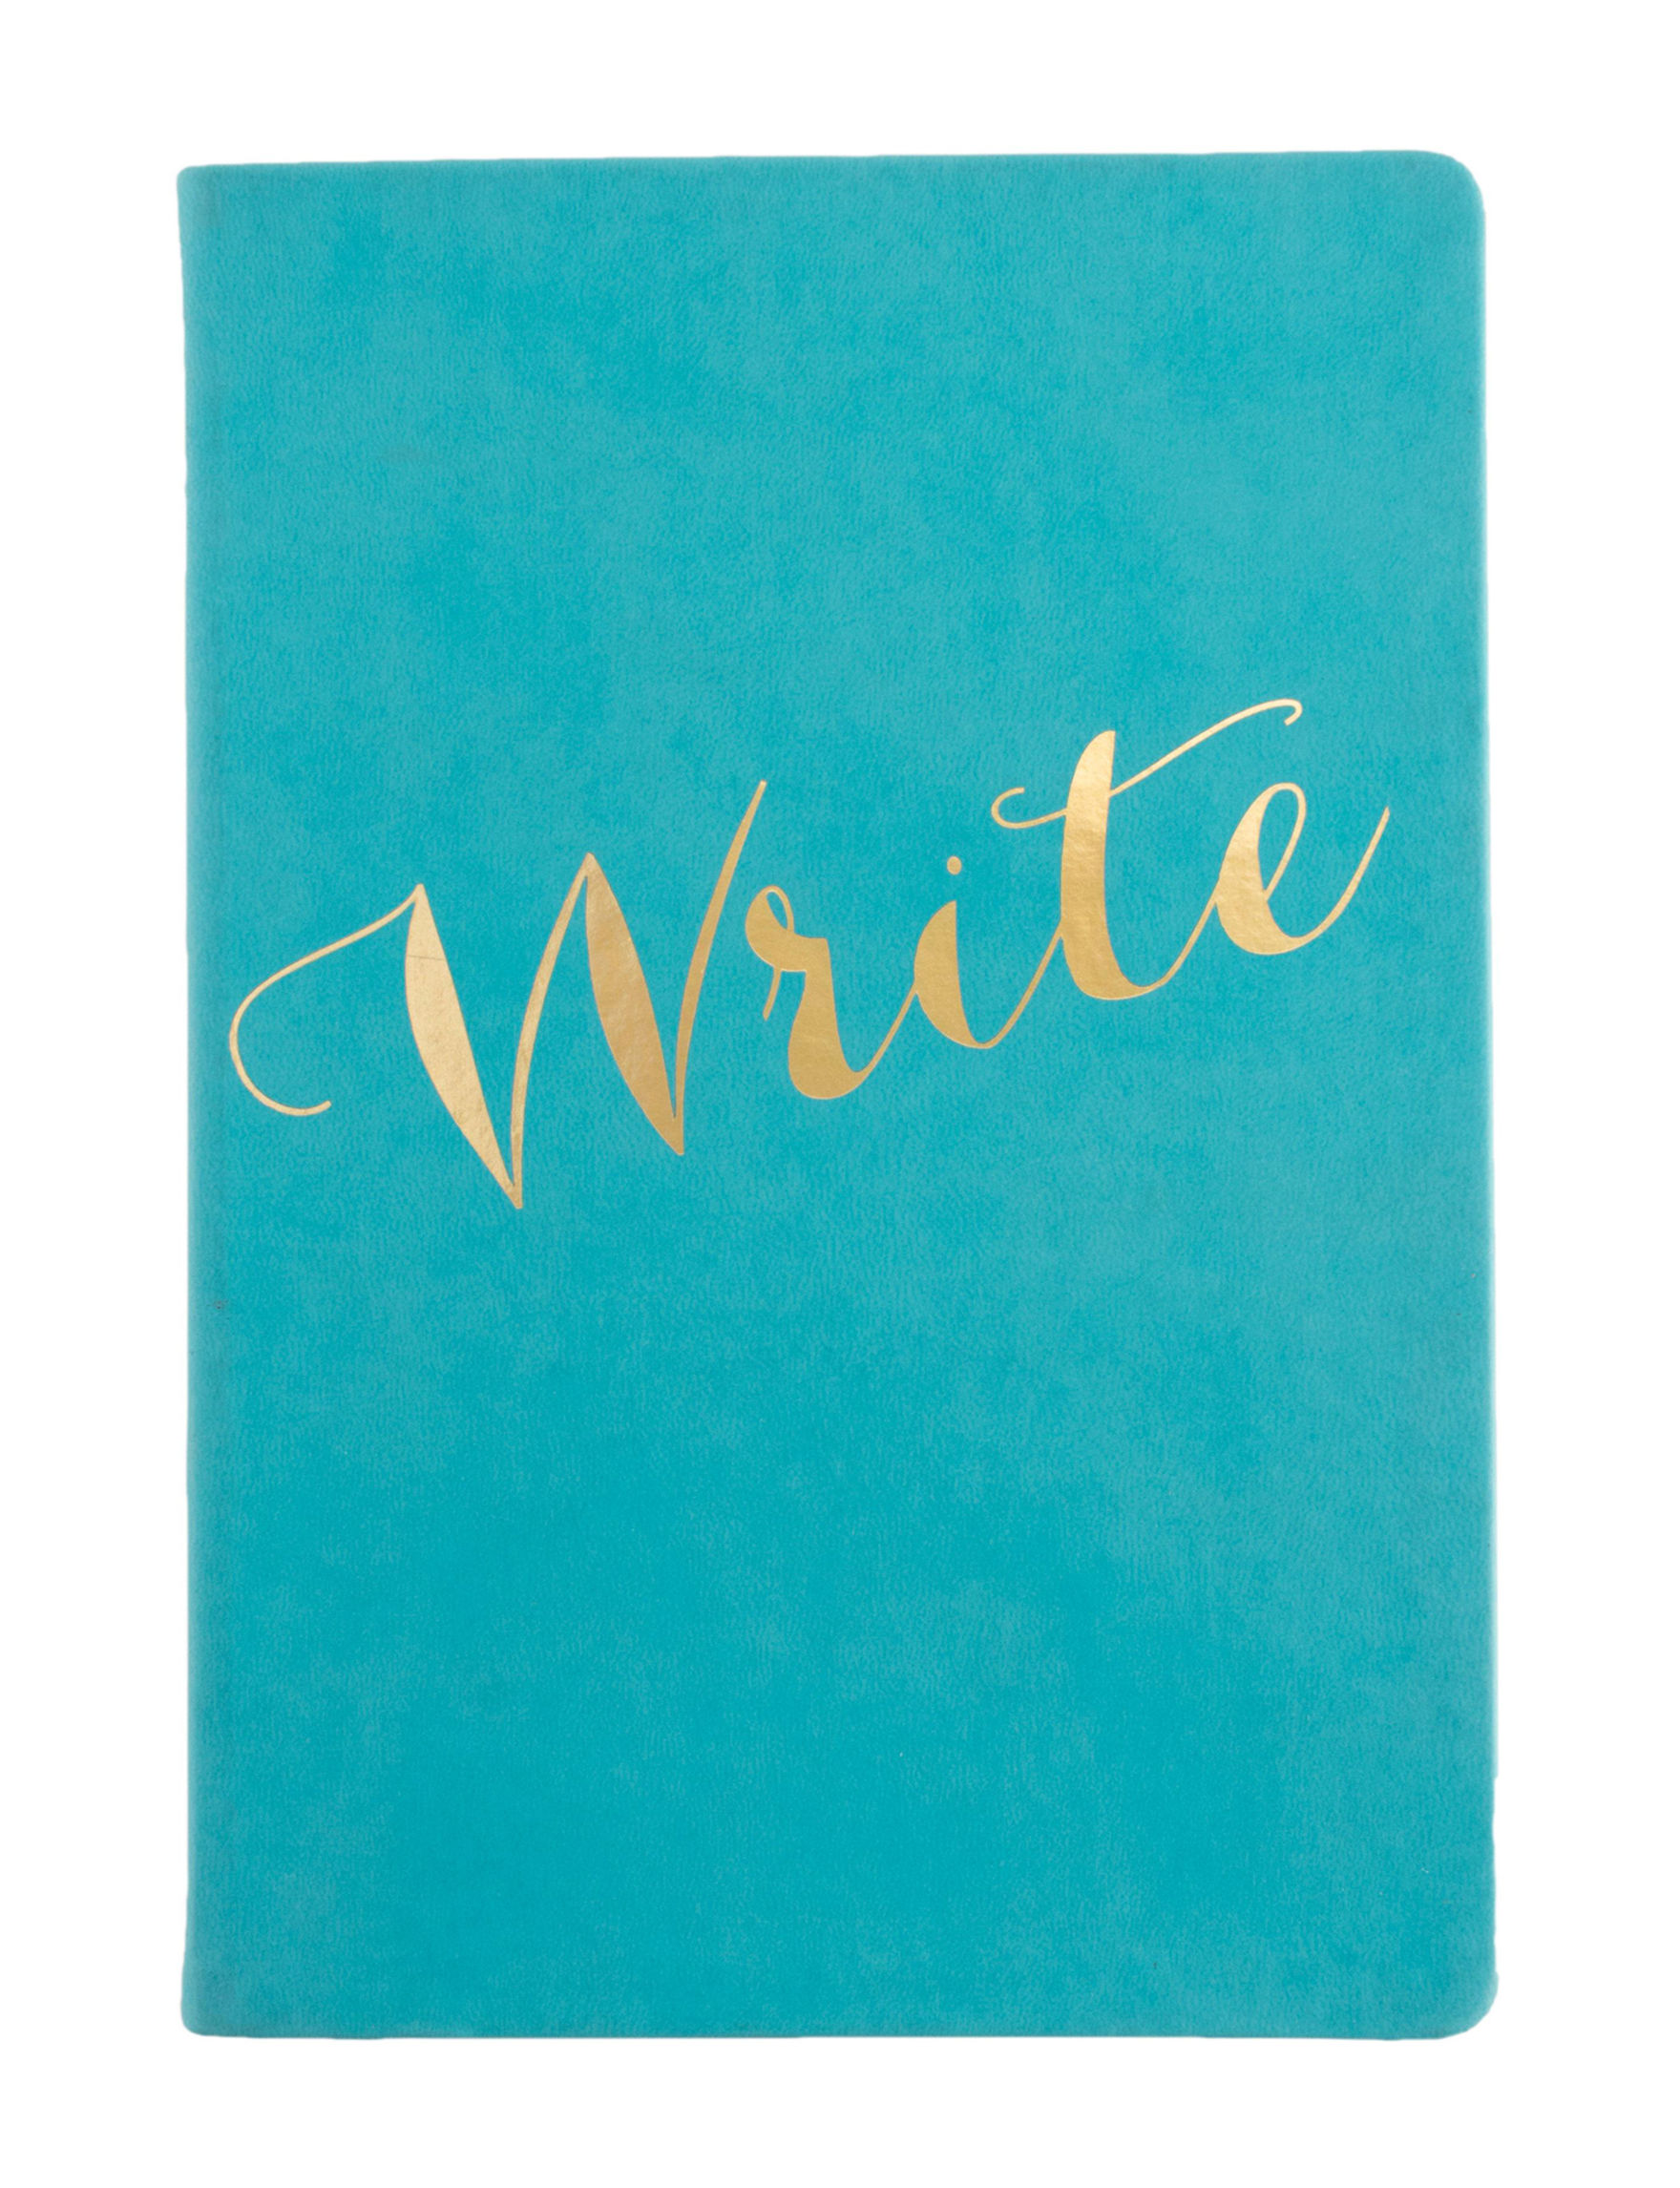 Eccolo Turquoise Journals & Notepads School & Office Supplies